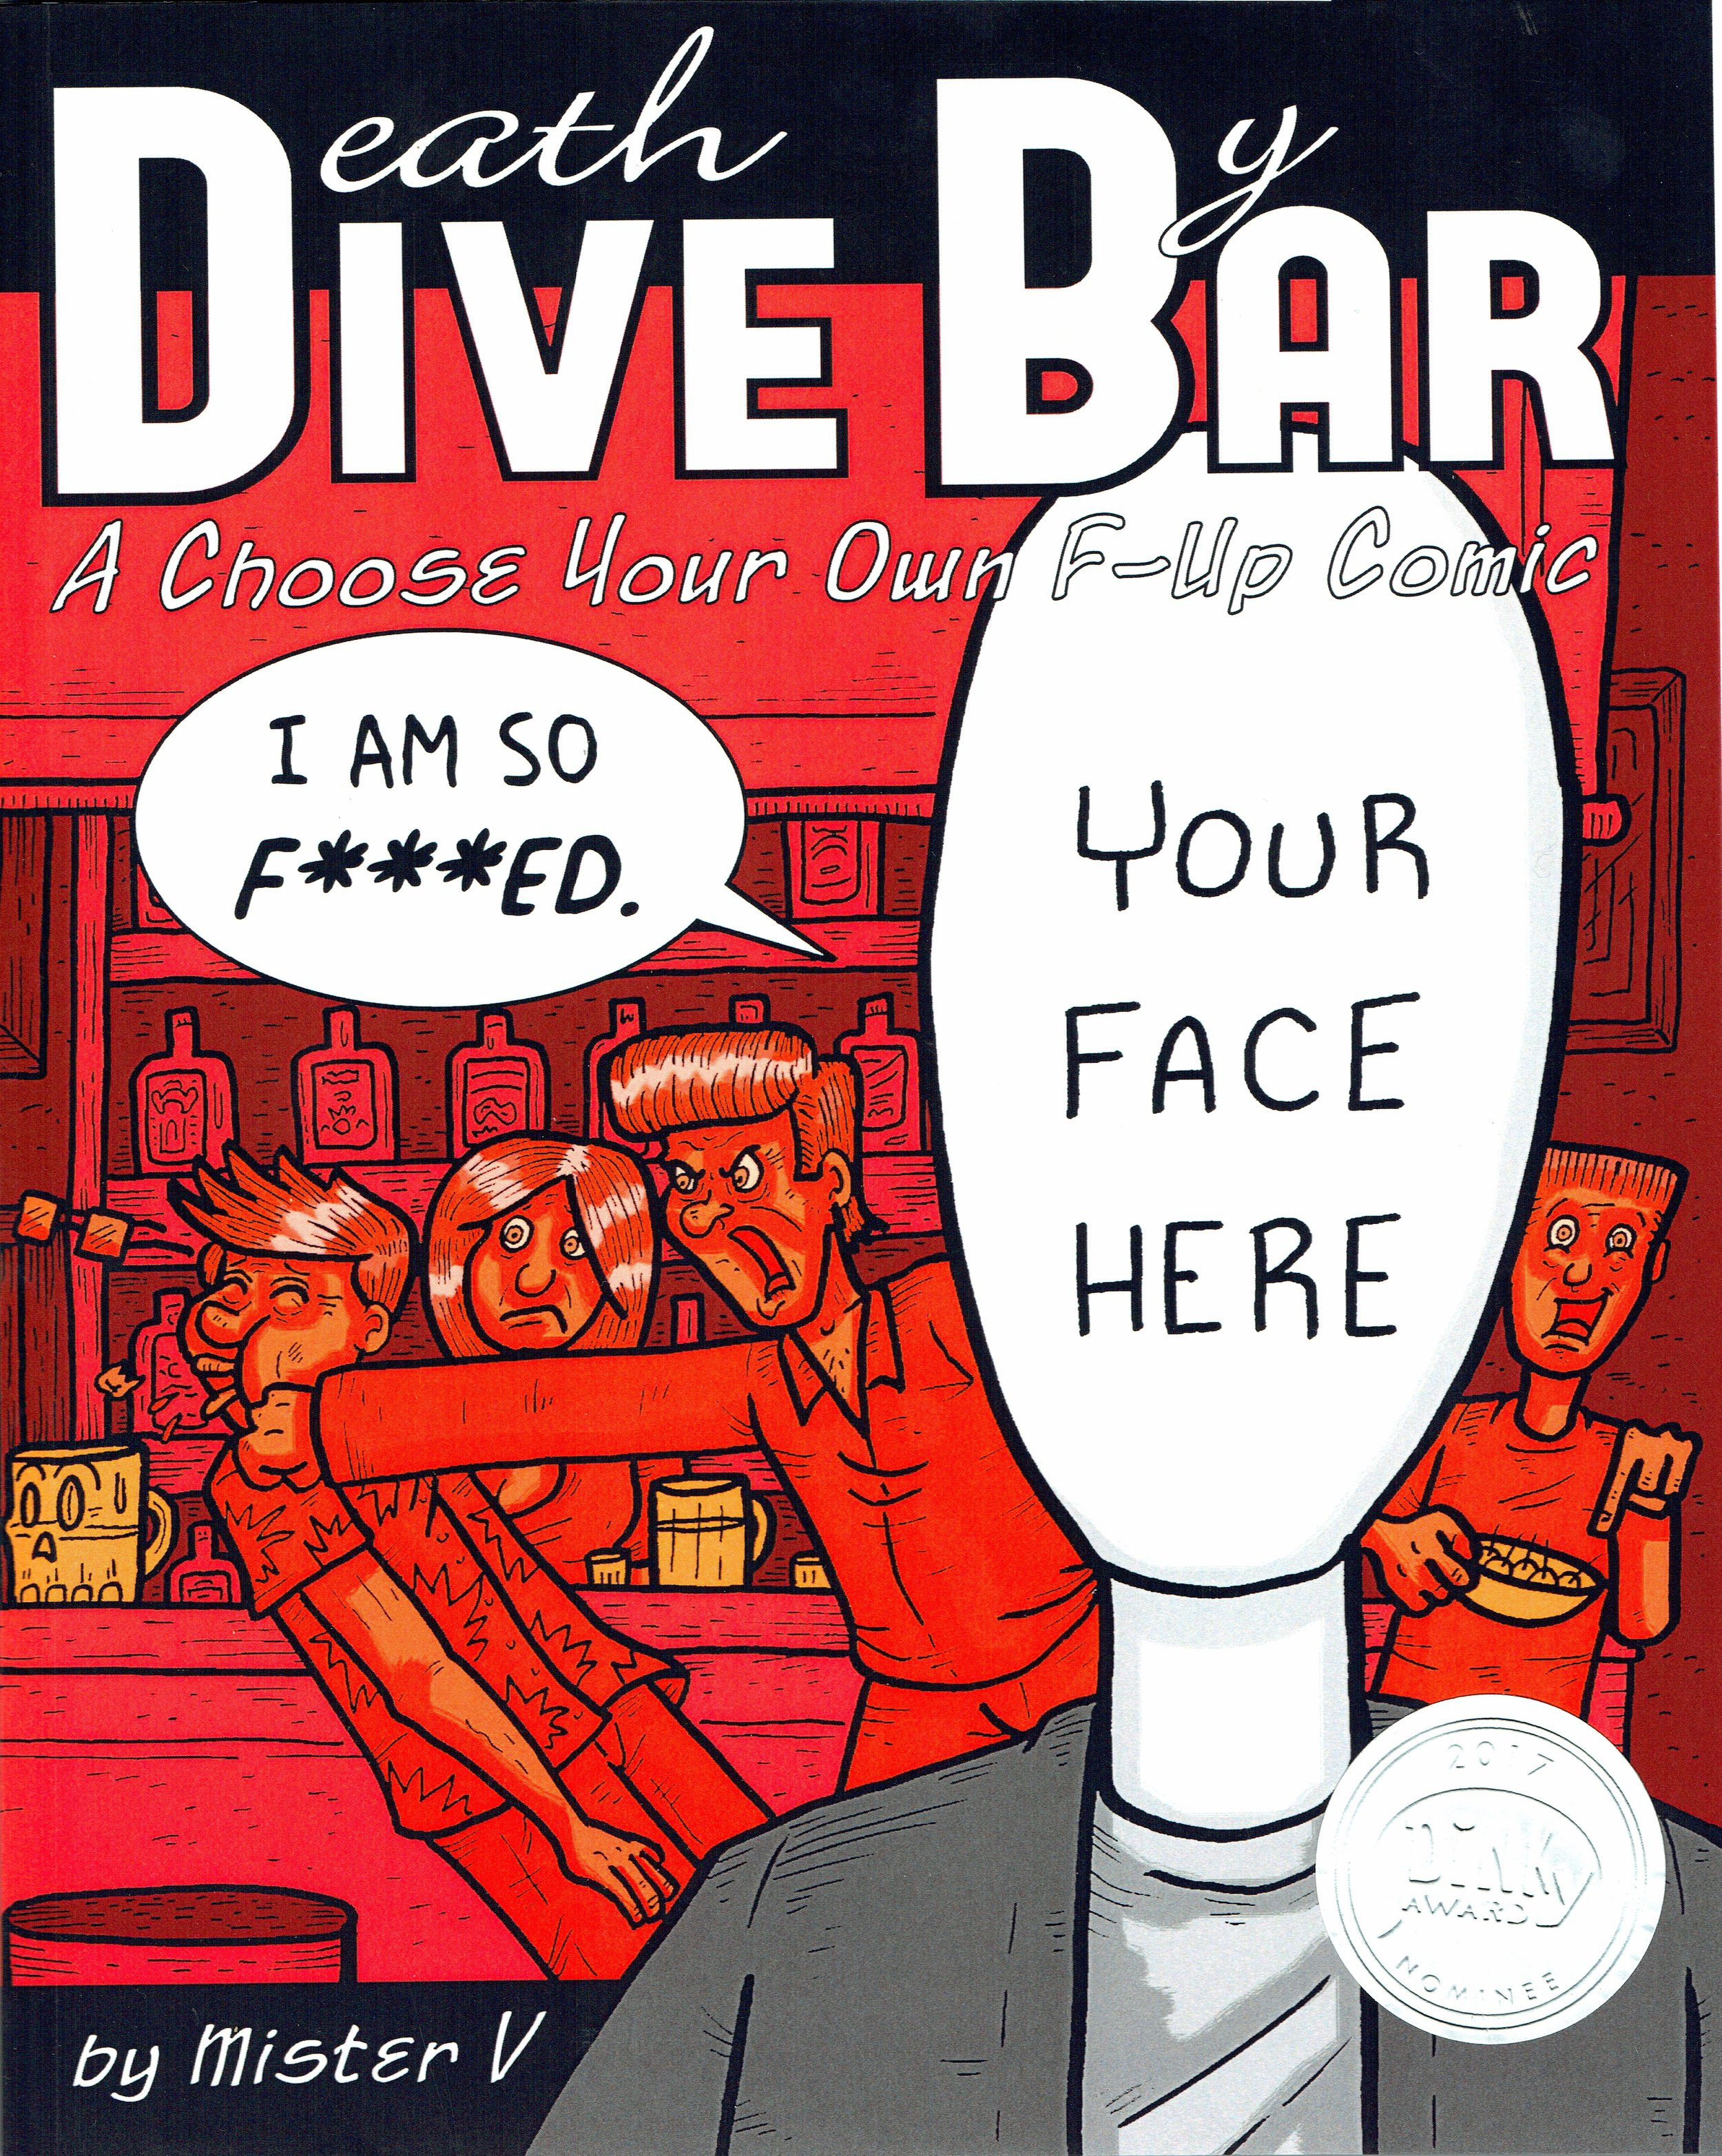 Death By Dive Bar by Mister V.